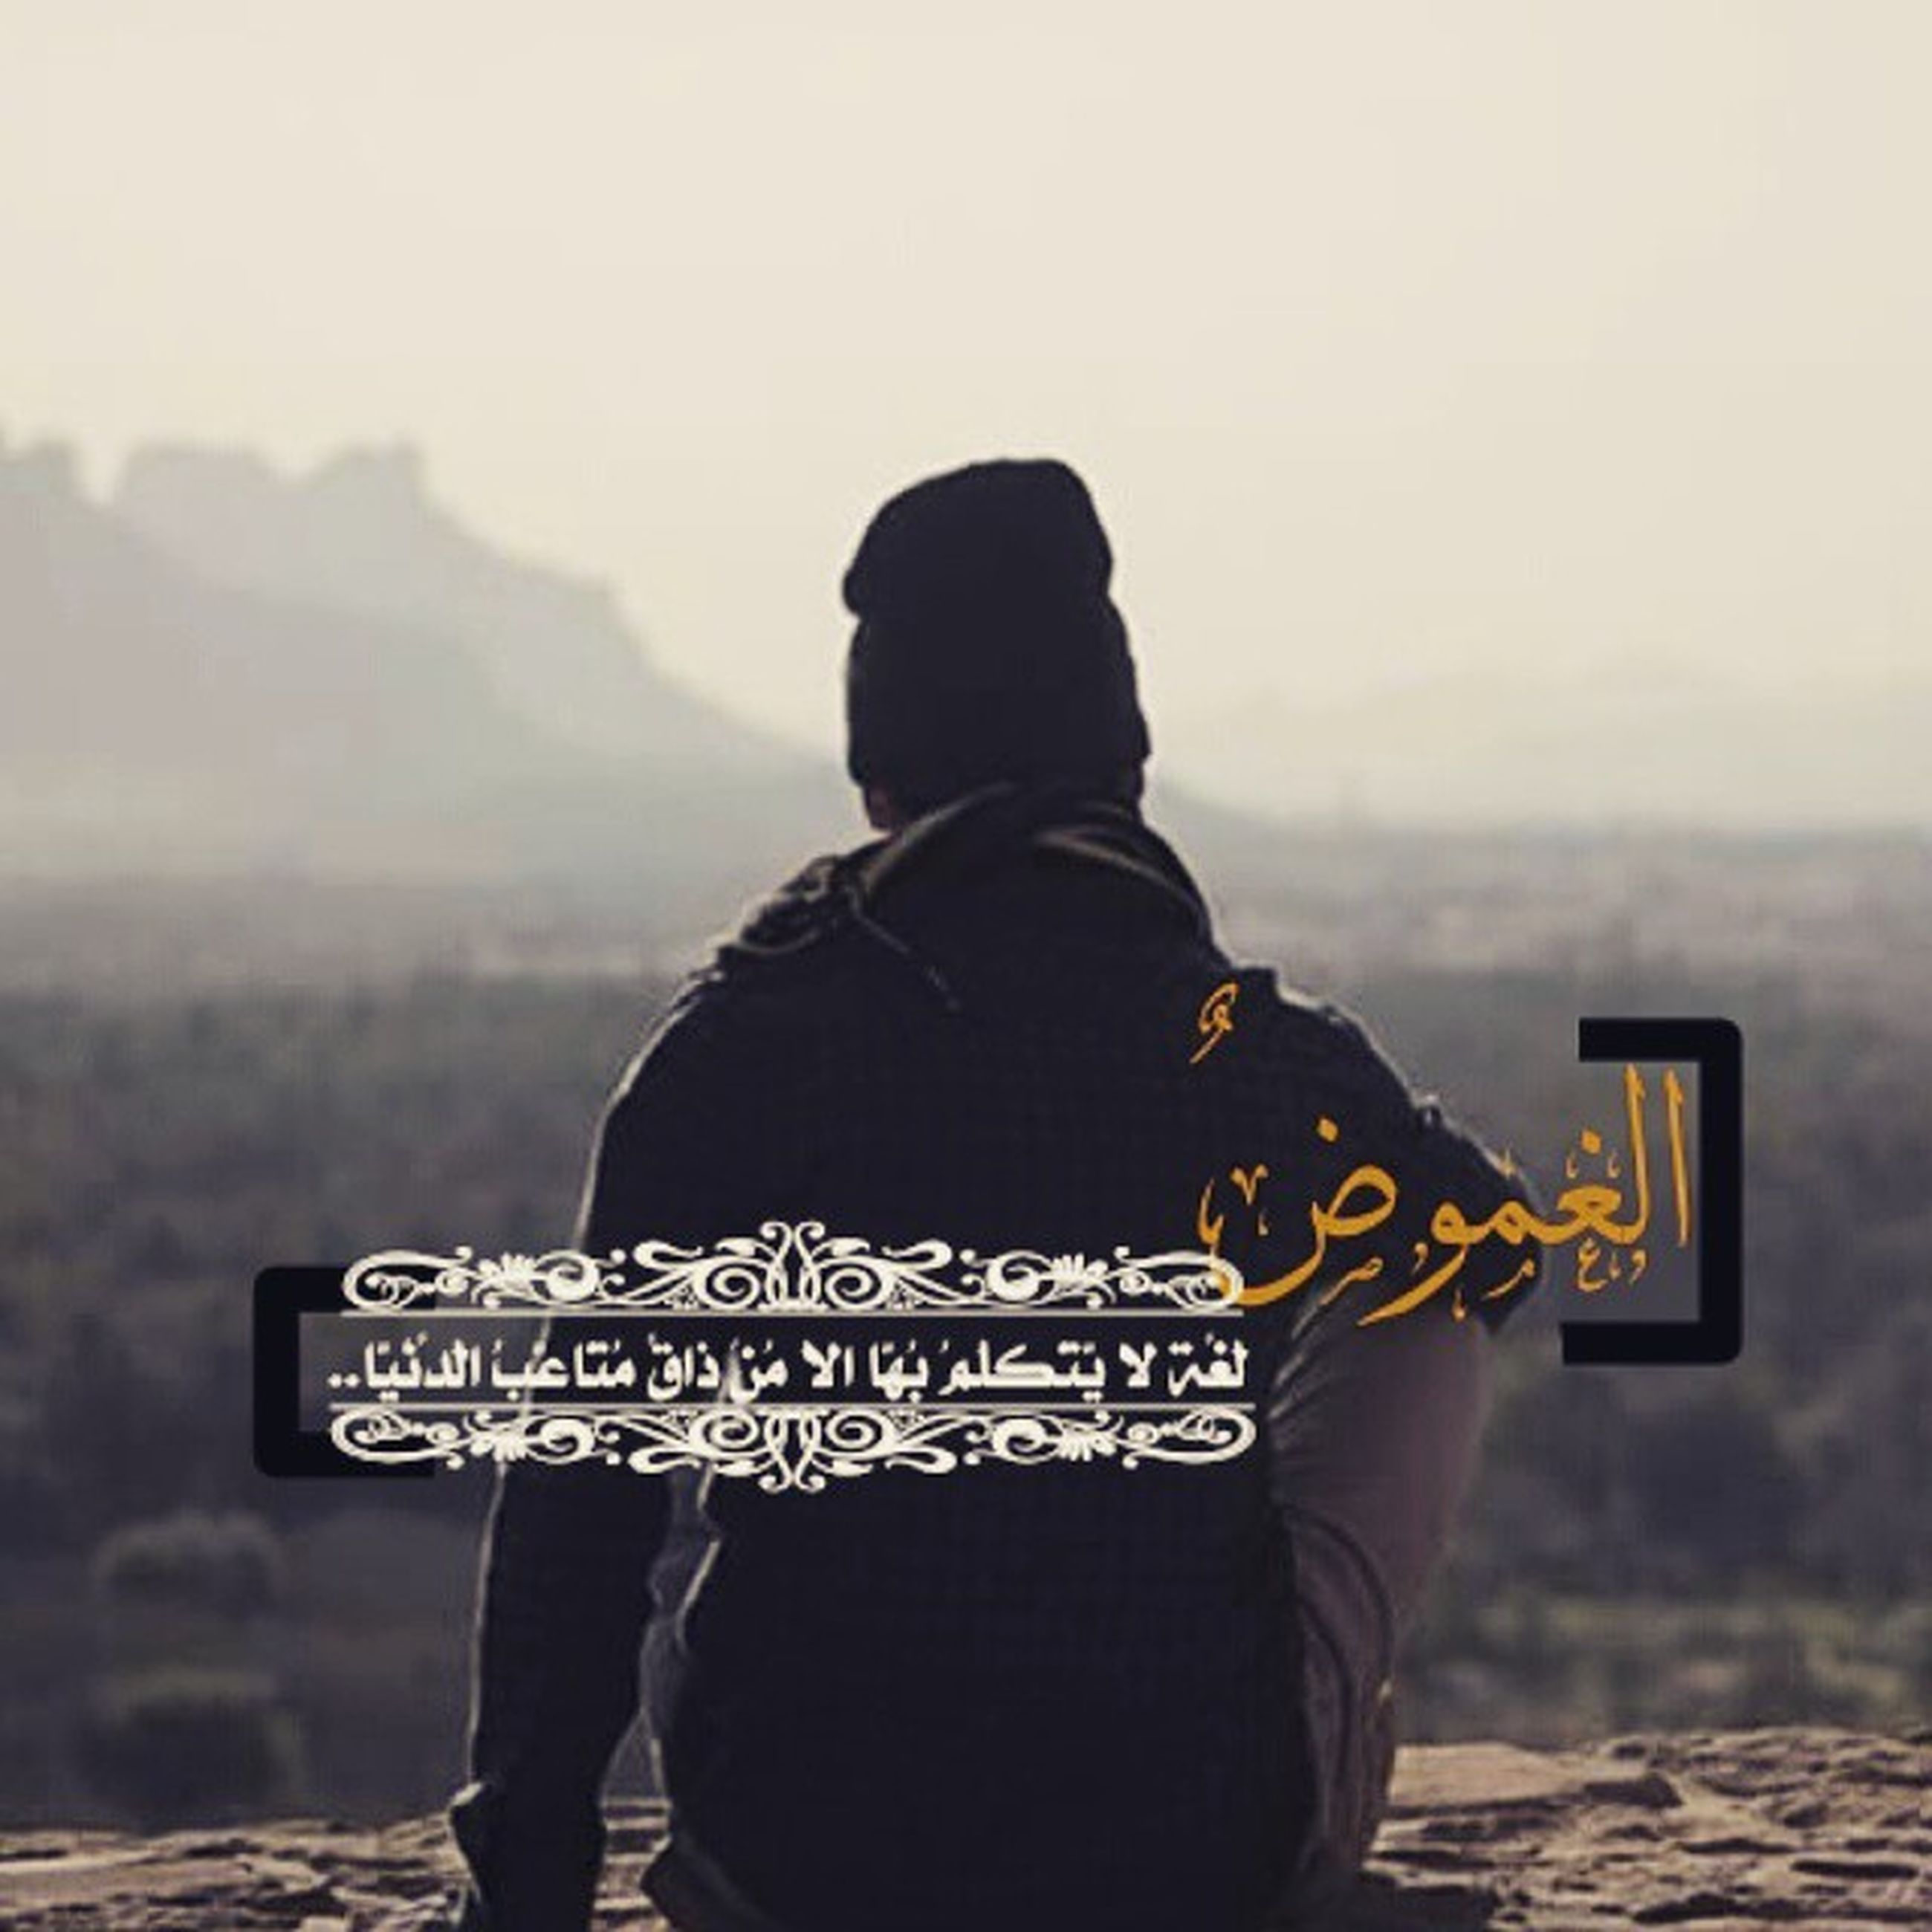 text, lifestyles, communication, standing, rear view, western script, leisure activity, focus on foreground, casual clothing, men, three quarter length, waist up, warm clothing, outdoors, sky, sign, hooded shirt, day